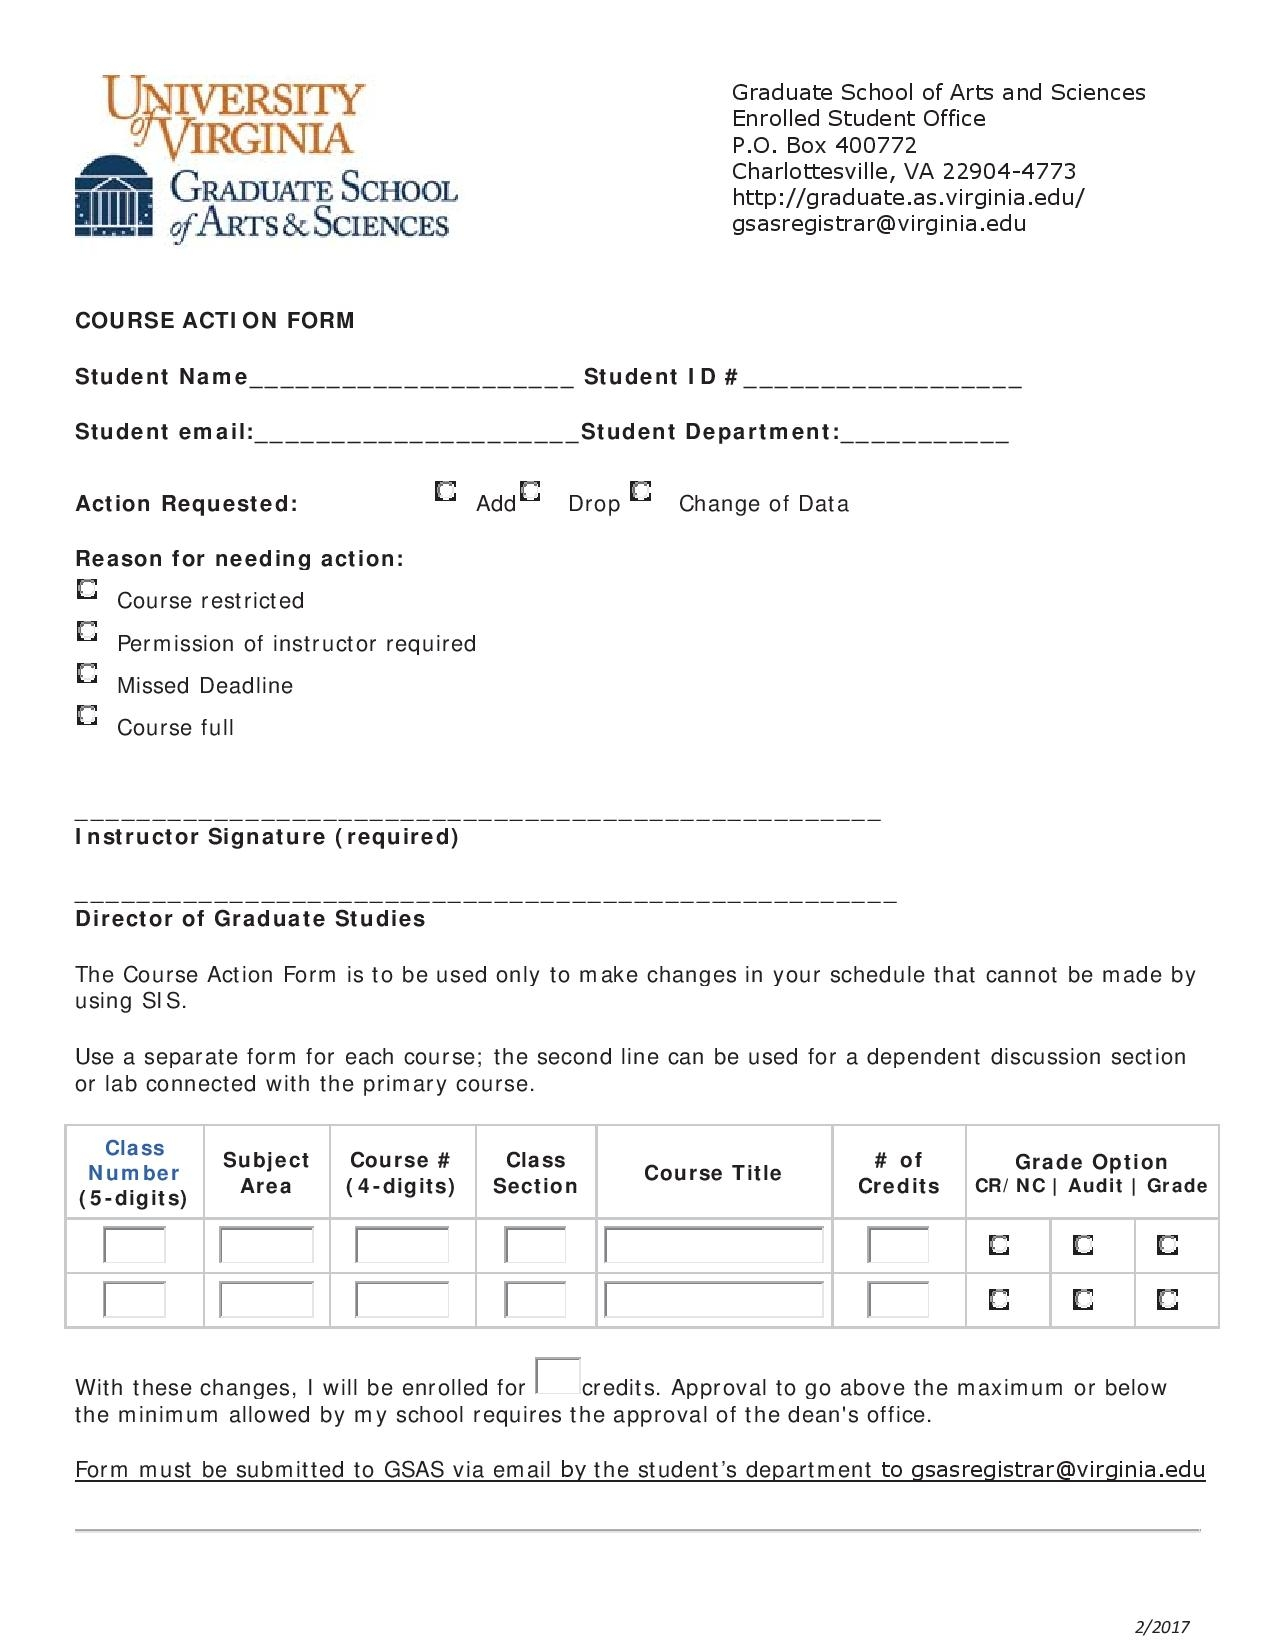 request for course action form page 001